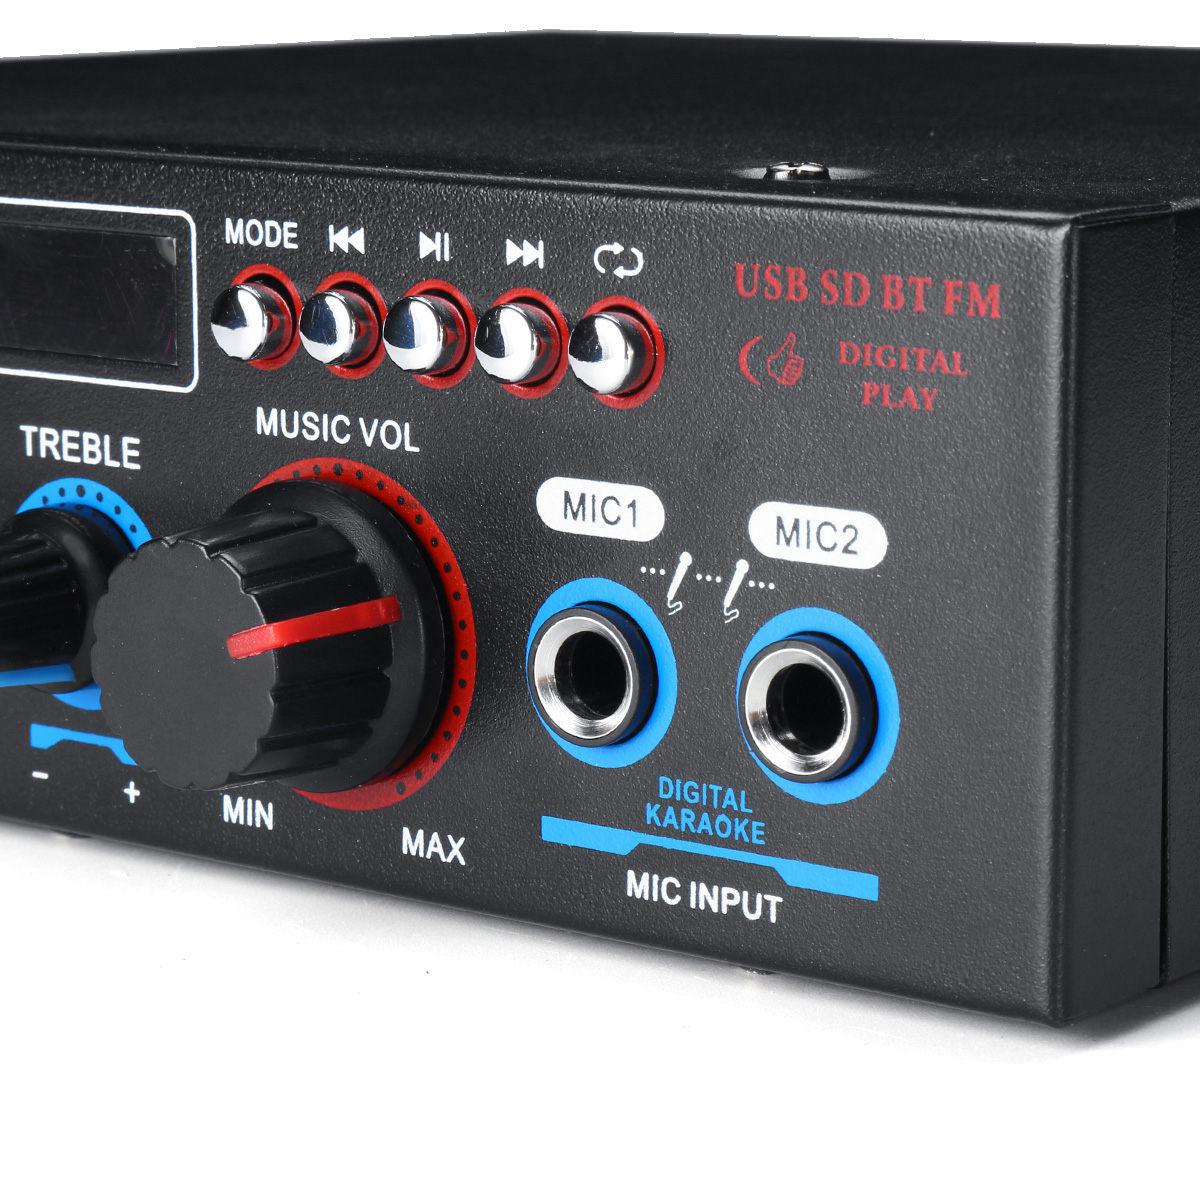 BT-309A 220V 800W 2CH Home Stereo bluetooth Amplifier Support USB FM AUX MIC Microphone